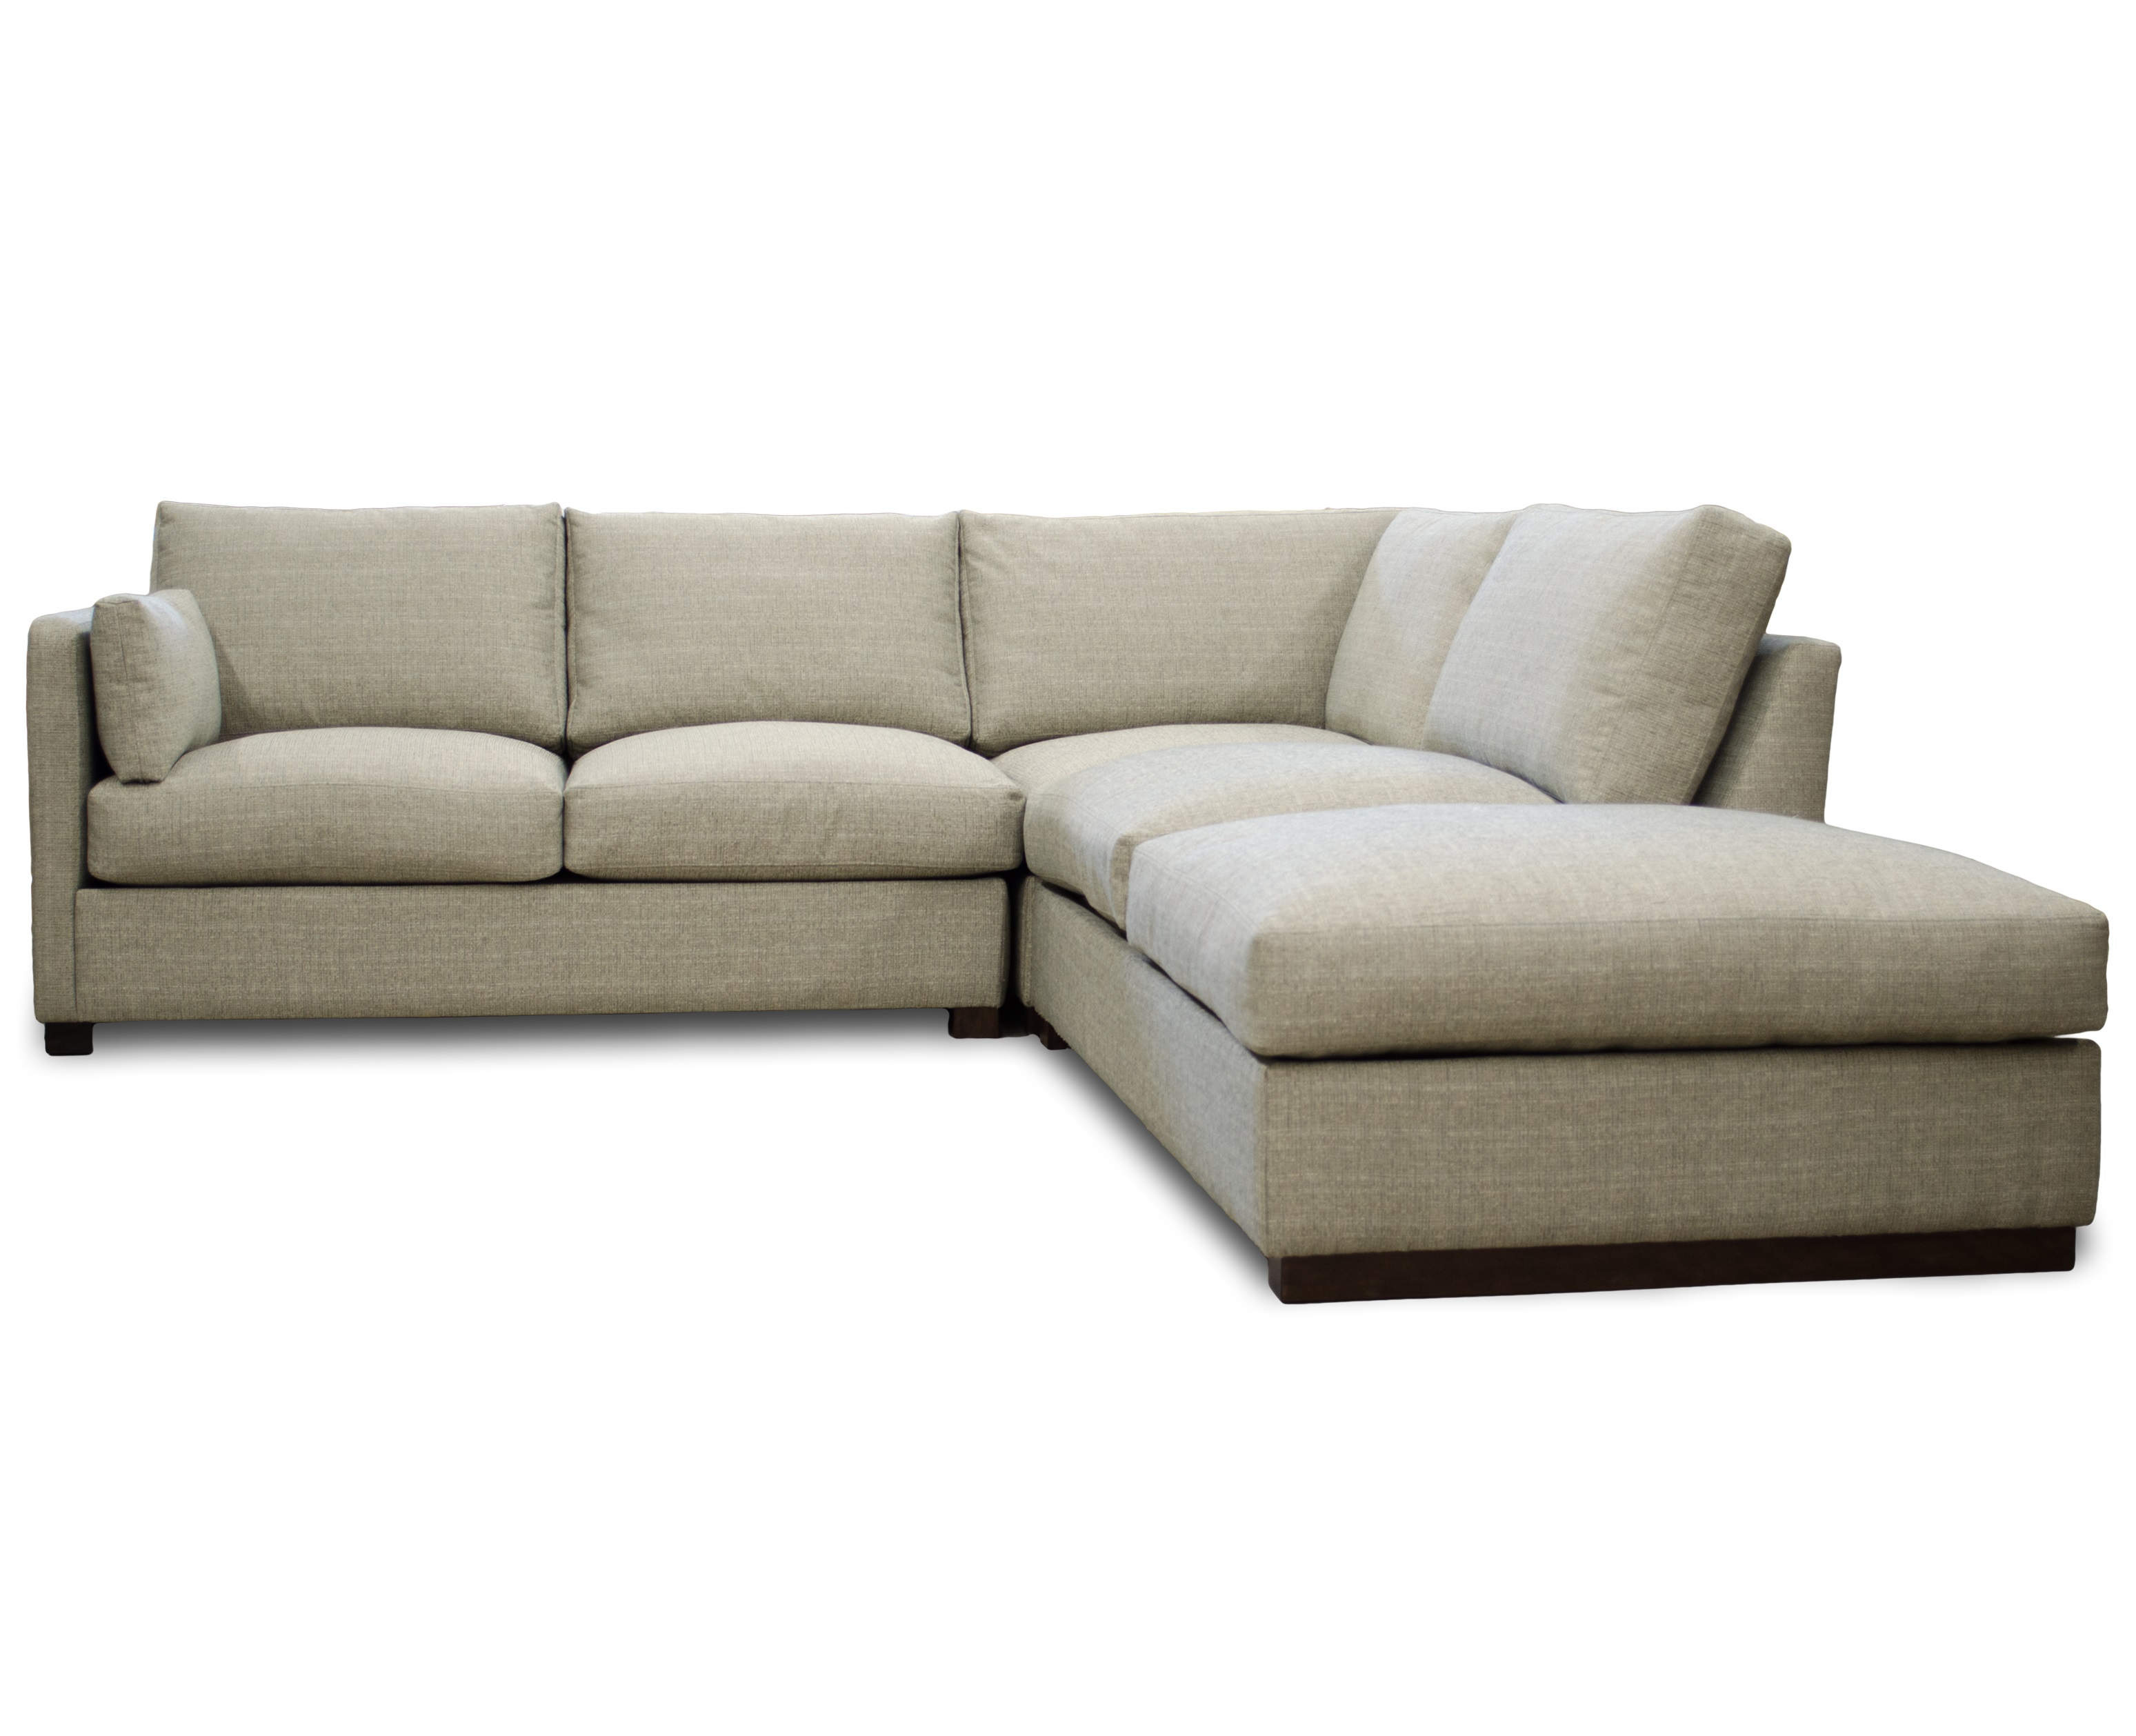 montreal sectional sofa small sofas with metal legs aberdeen mikaza meubles modernes